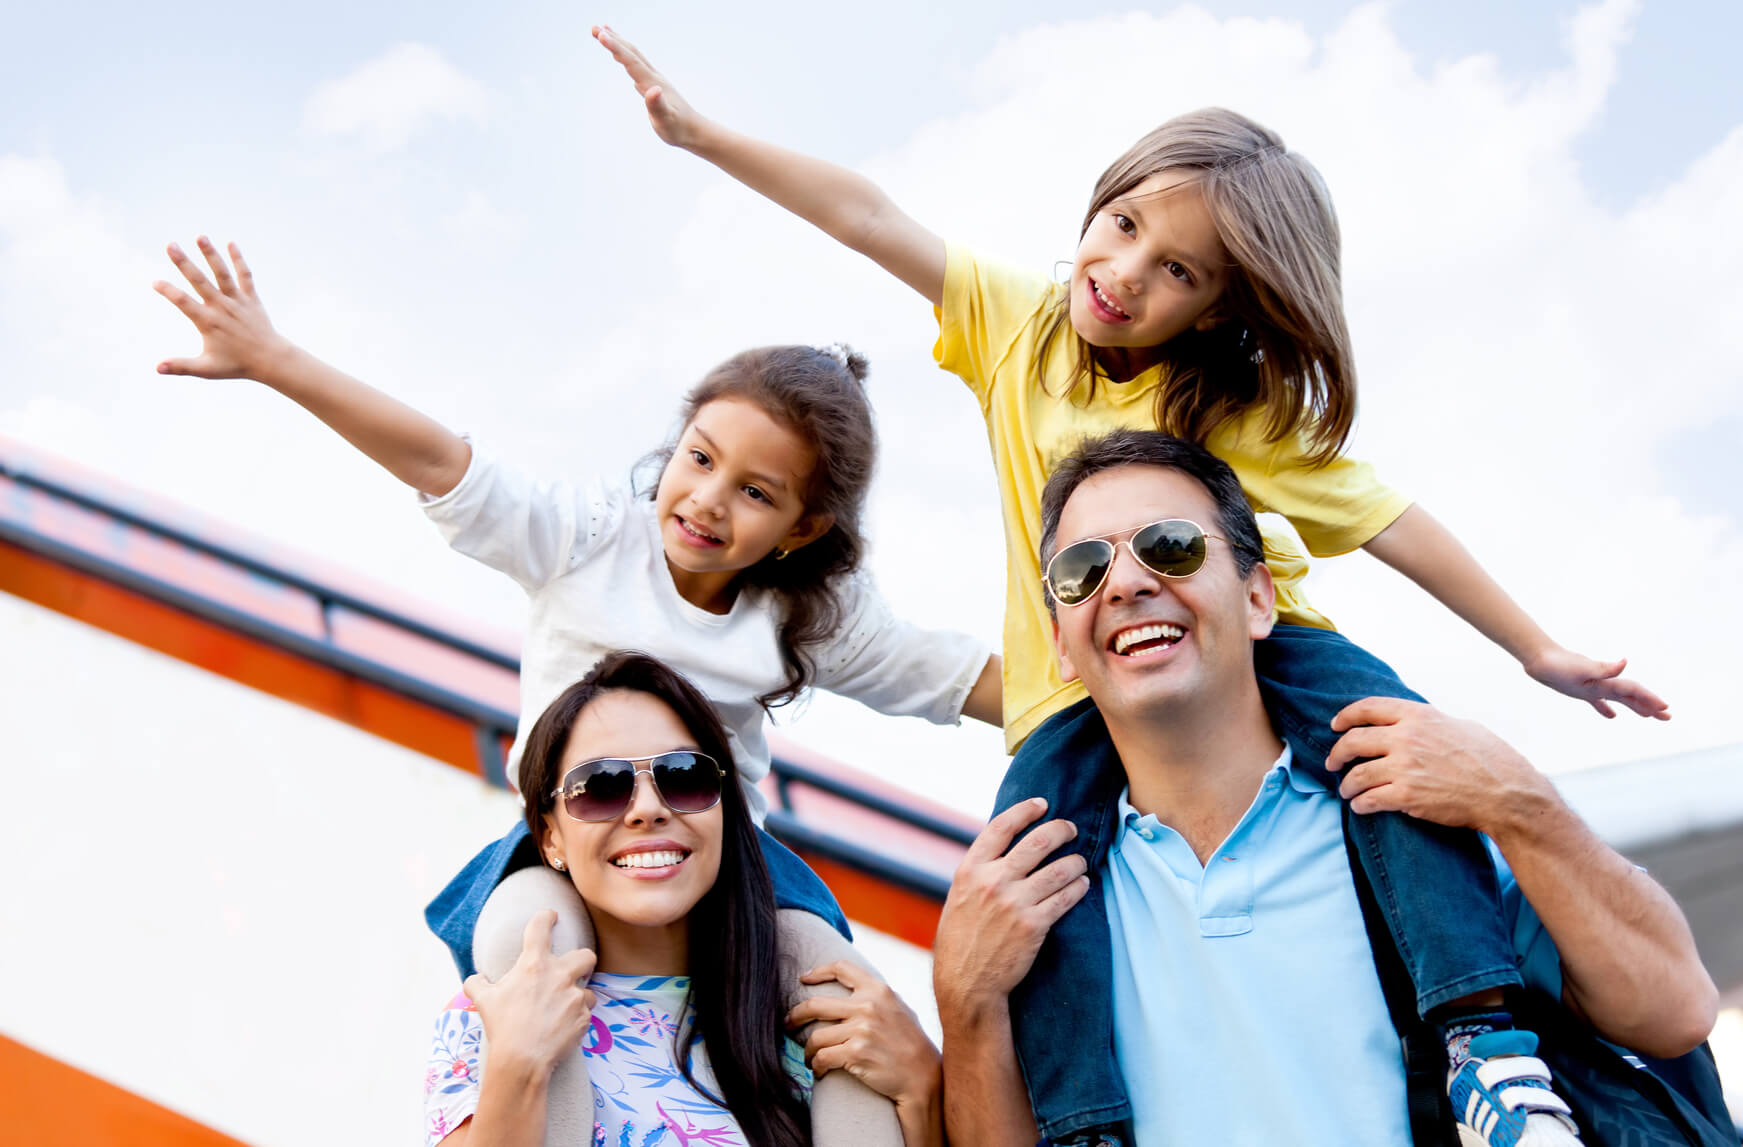 the significance of spending time with the family on weekends